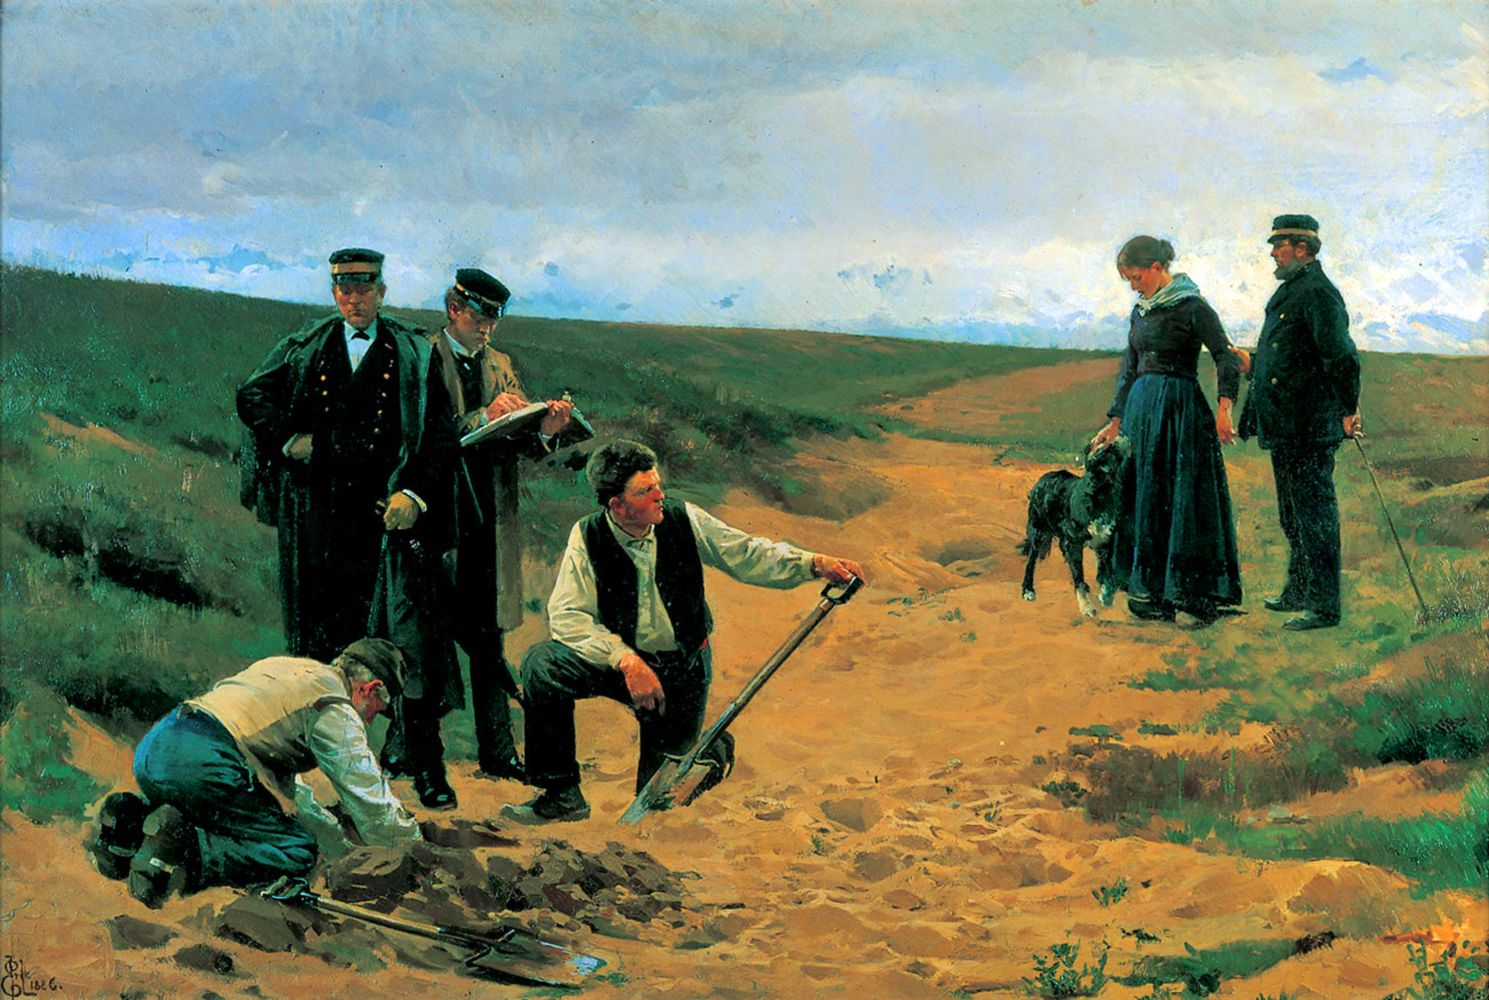 Danish Officers Burying A Dead Soldier During The Schleswig War Scandinavian Art 19th Century Art Classic Art